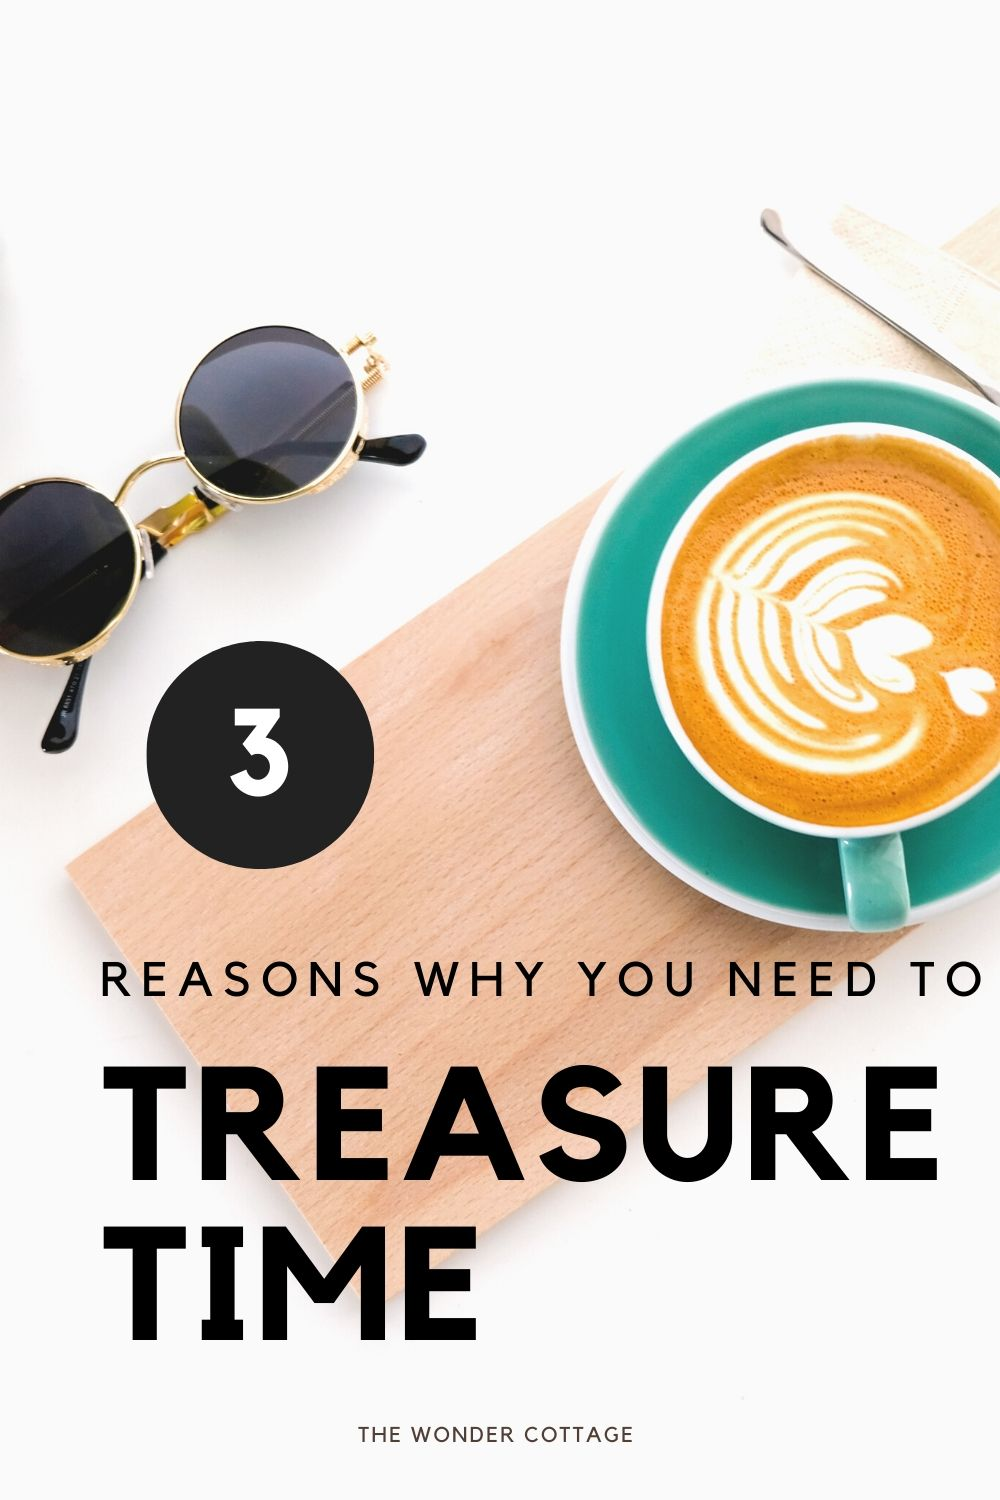 3 reasons why you need to treasure time